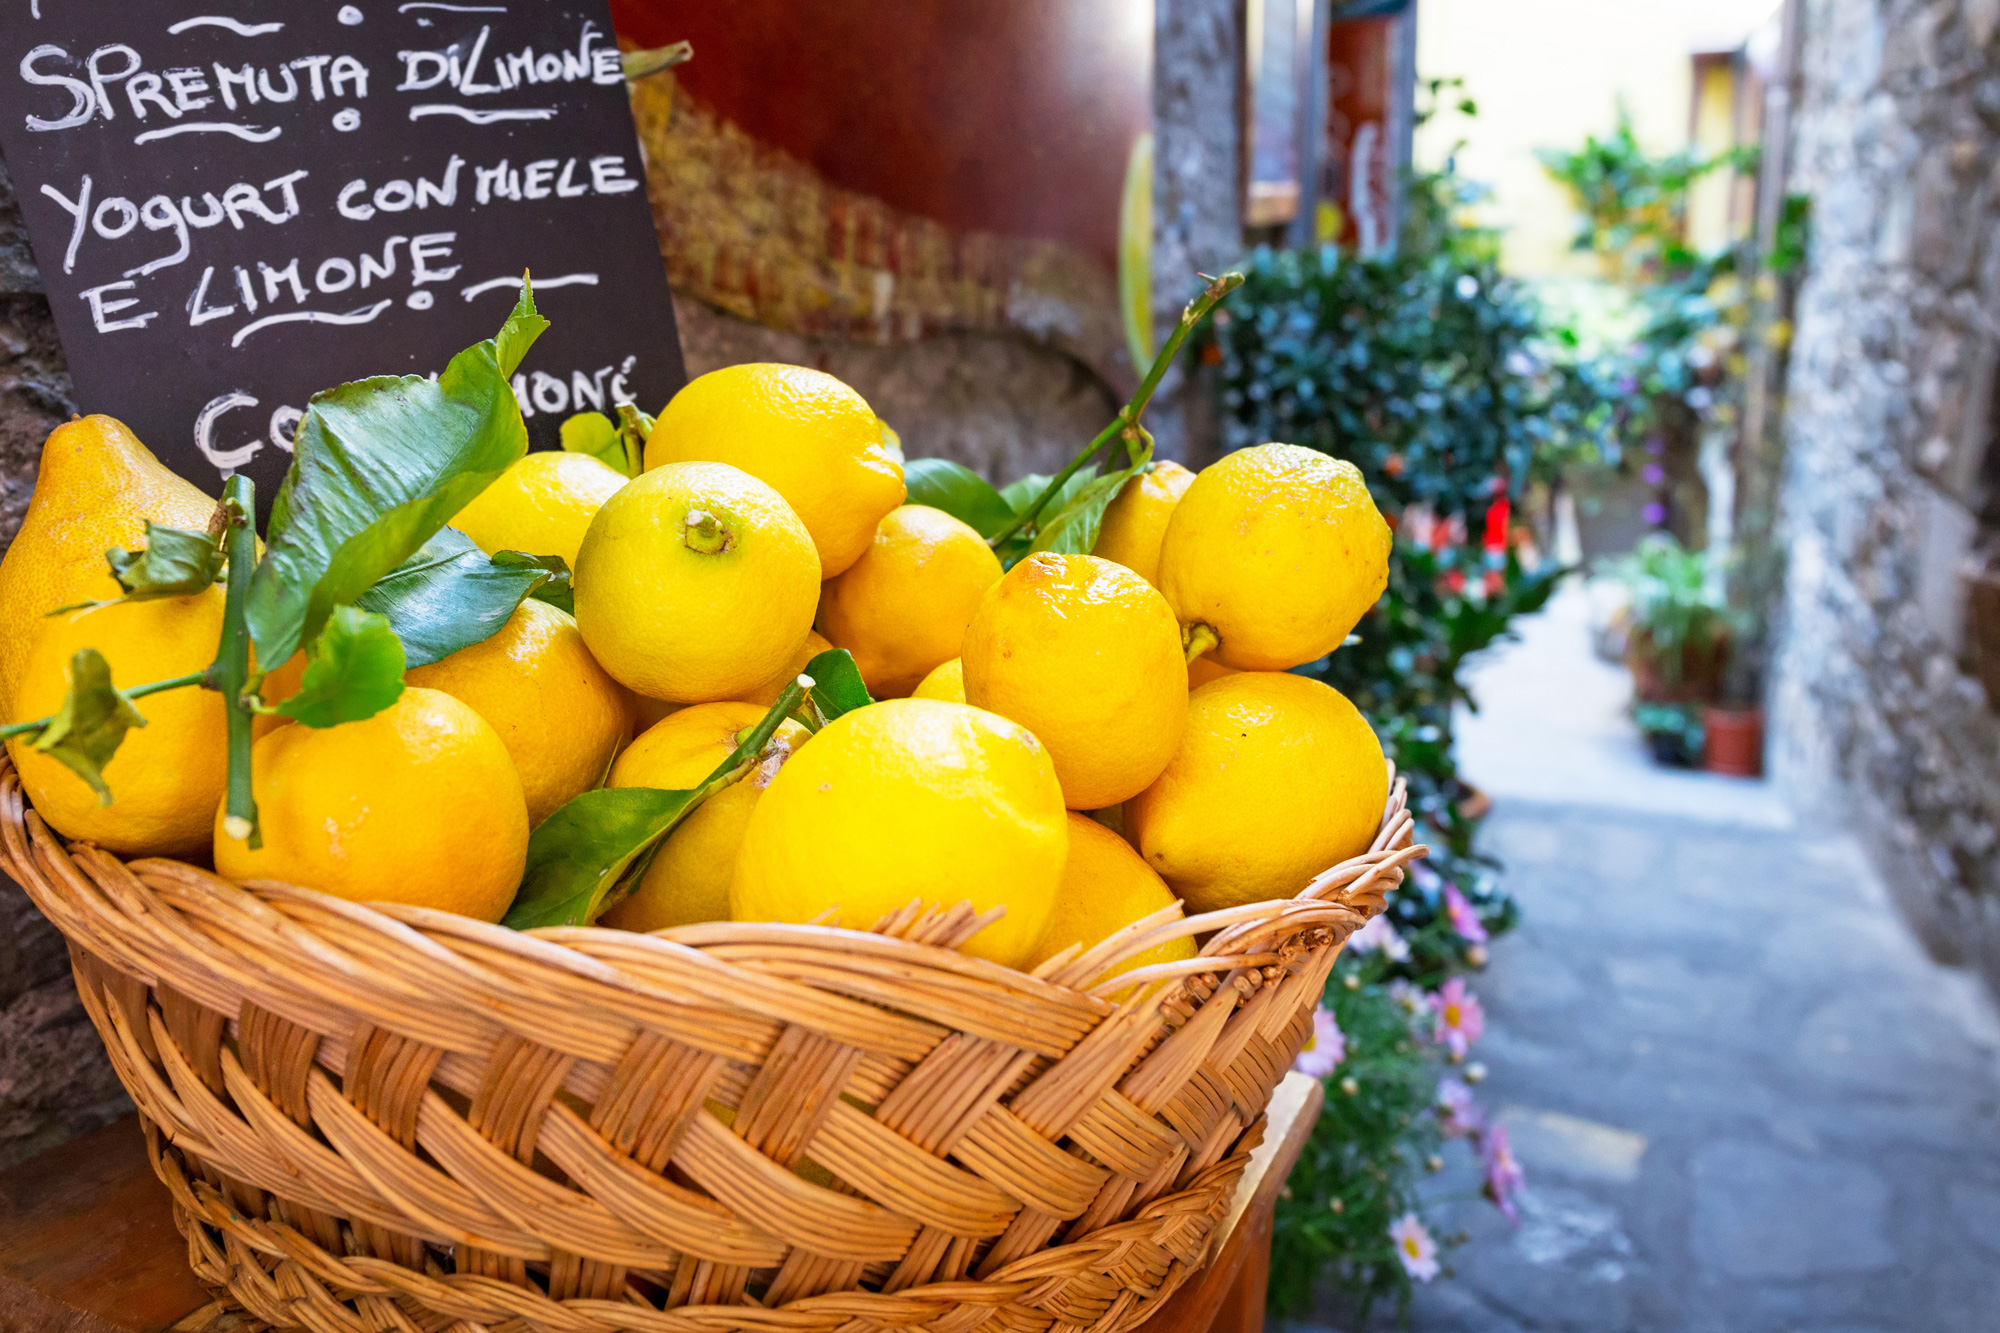 italy basket of lemons in street istk